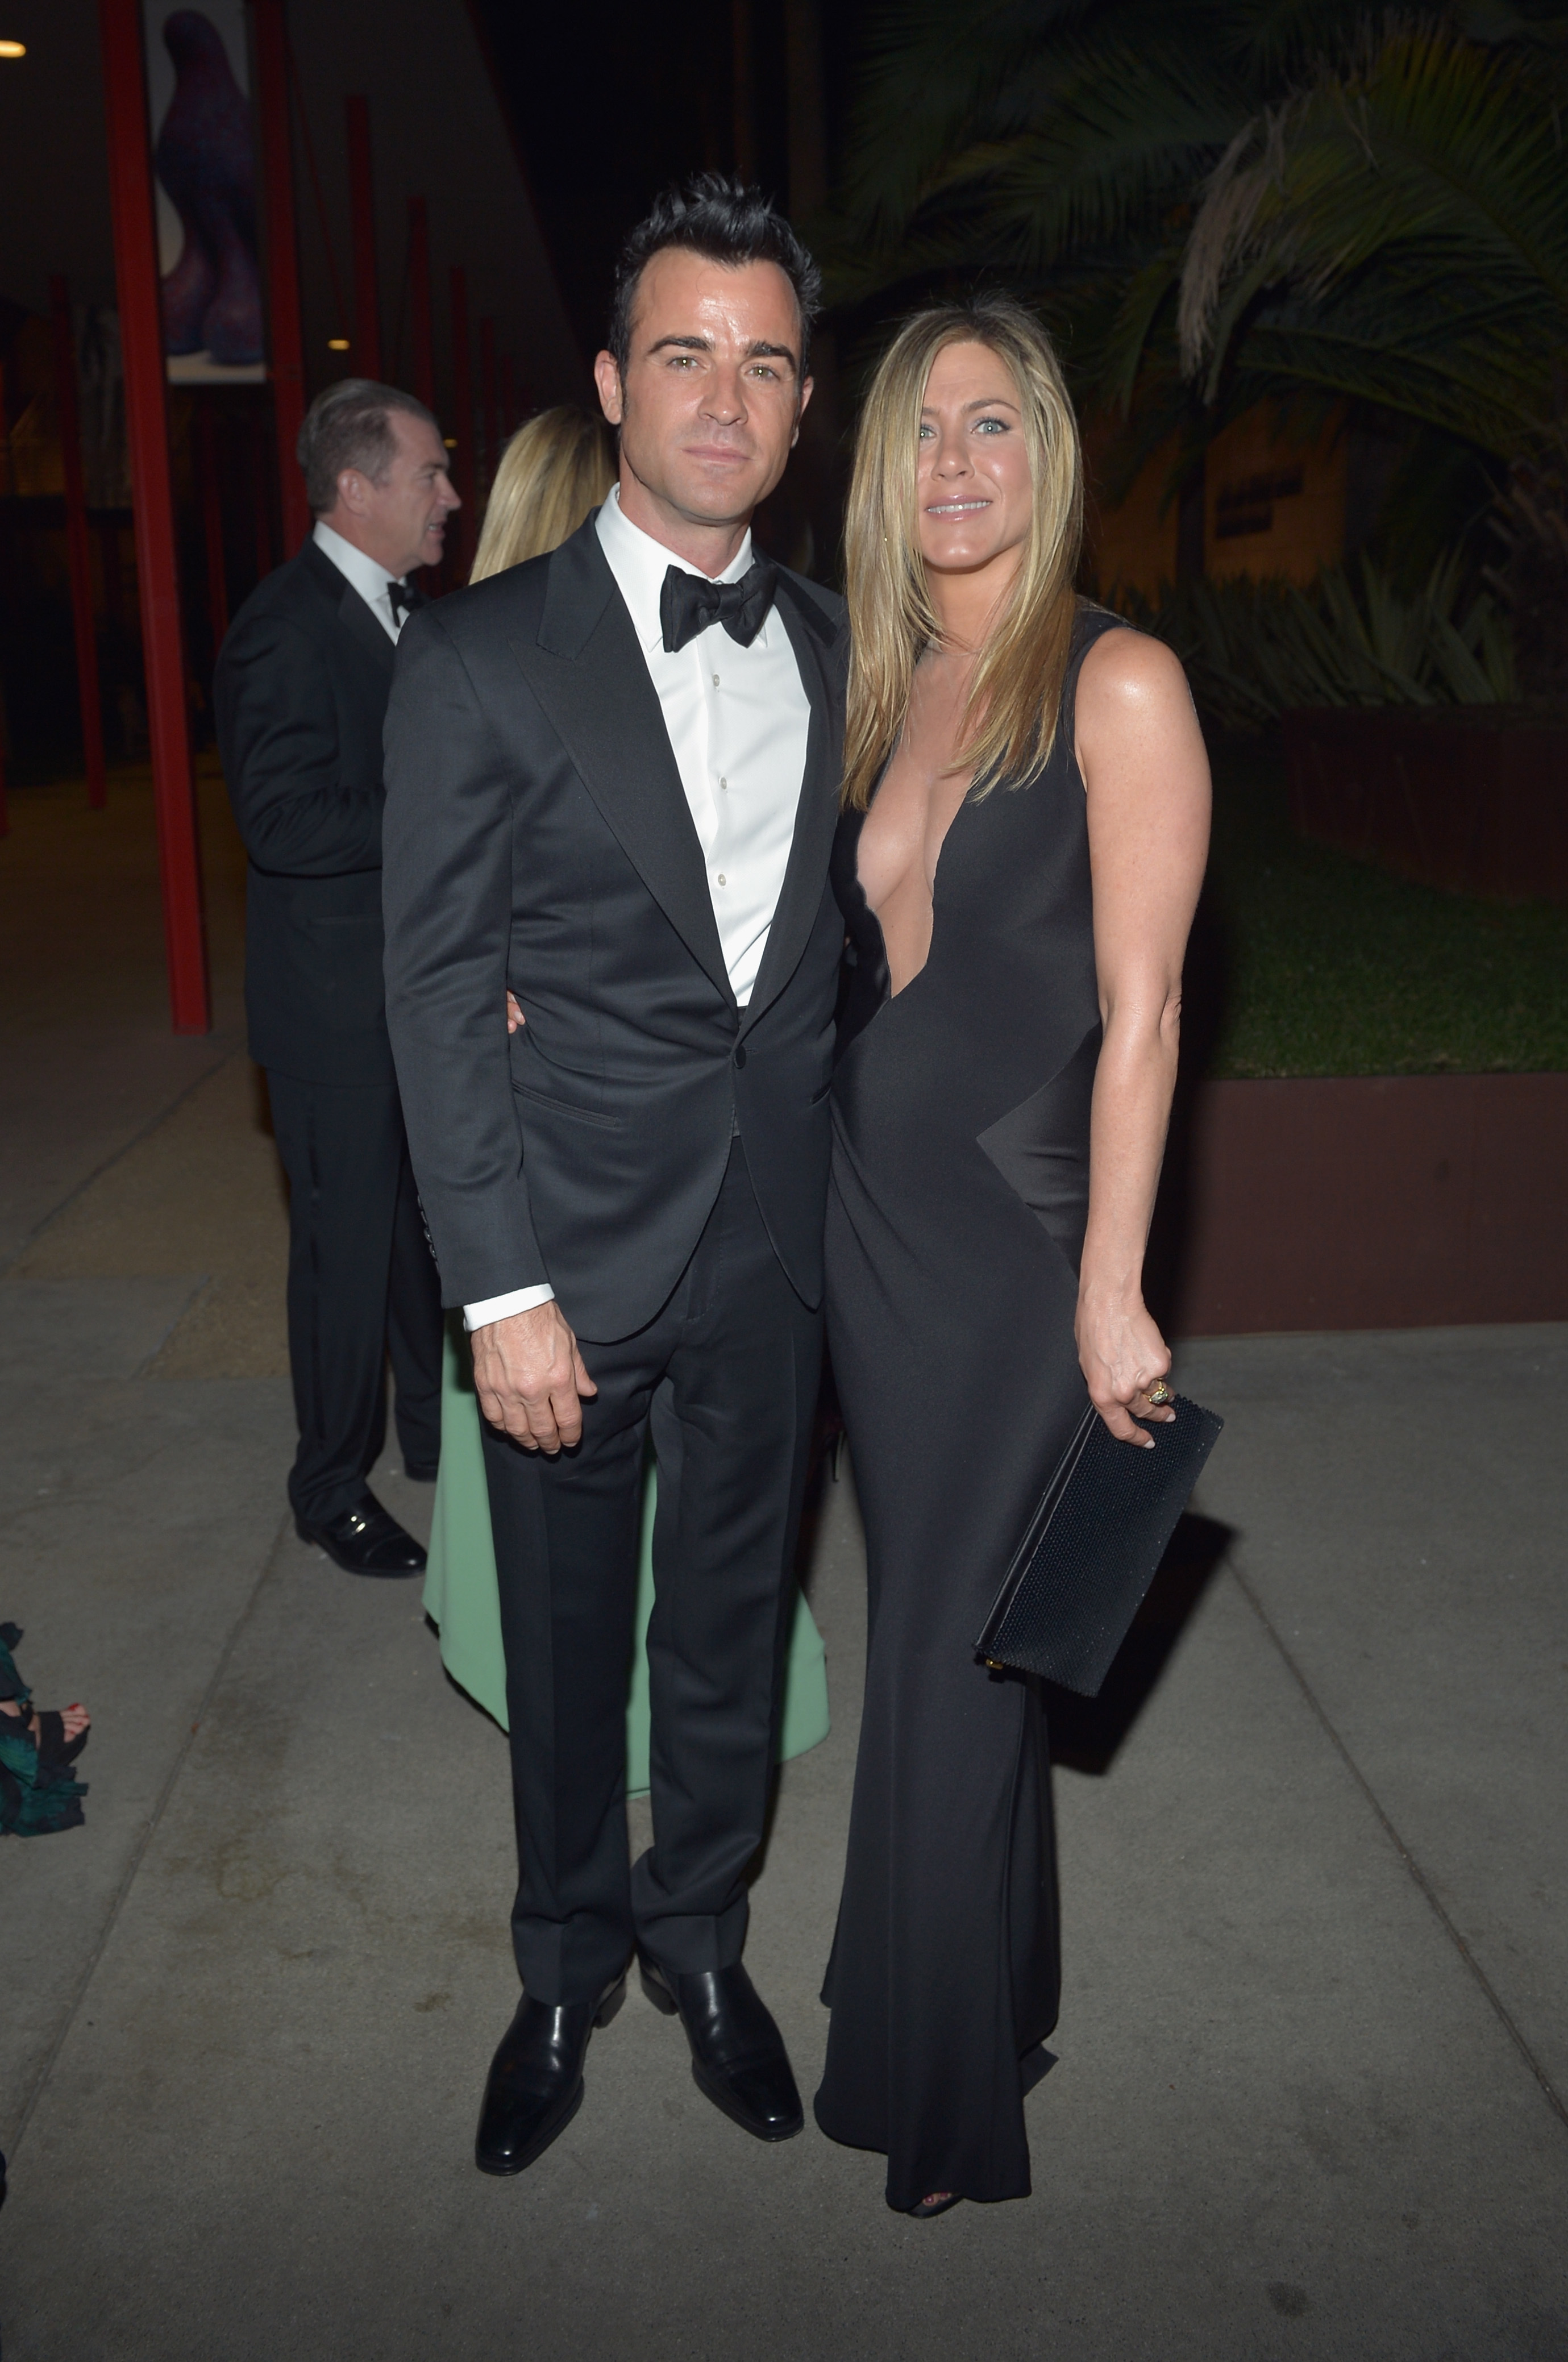 Jennifer Aniston engaged